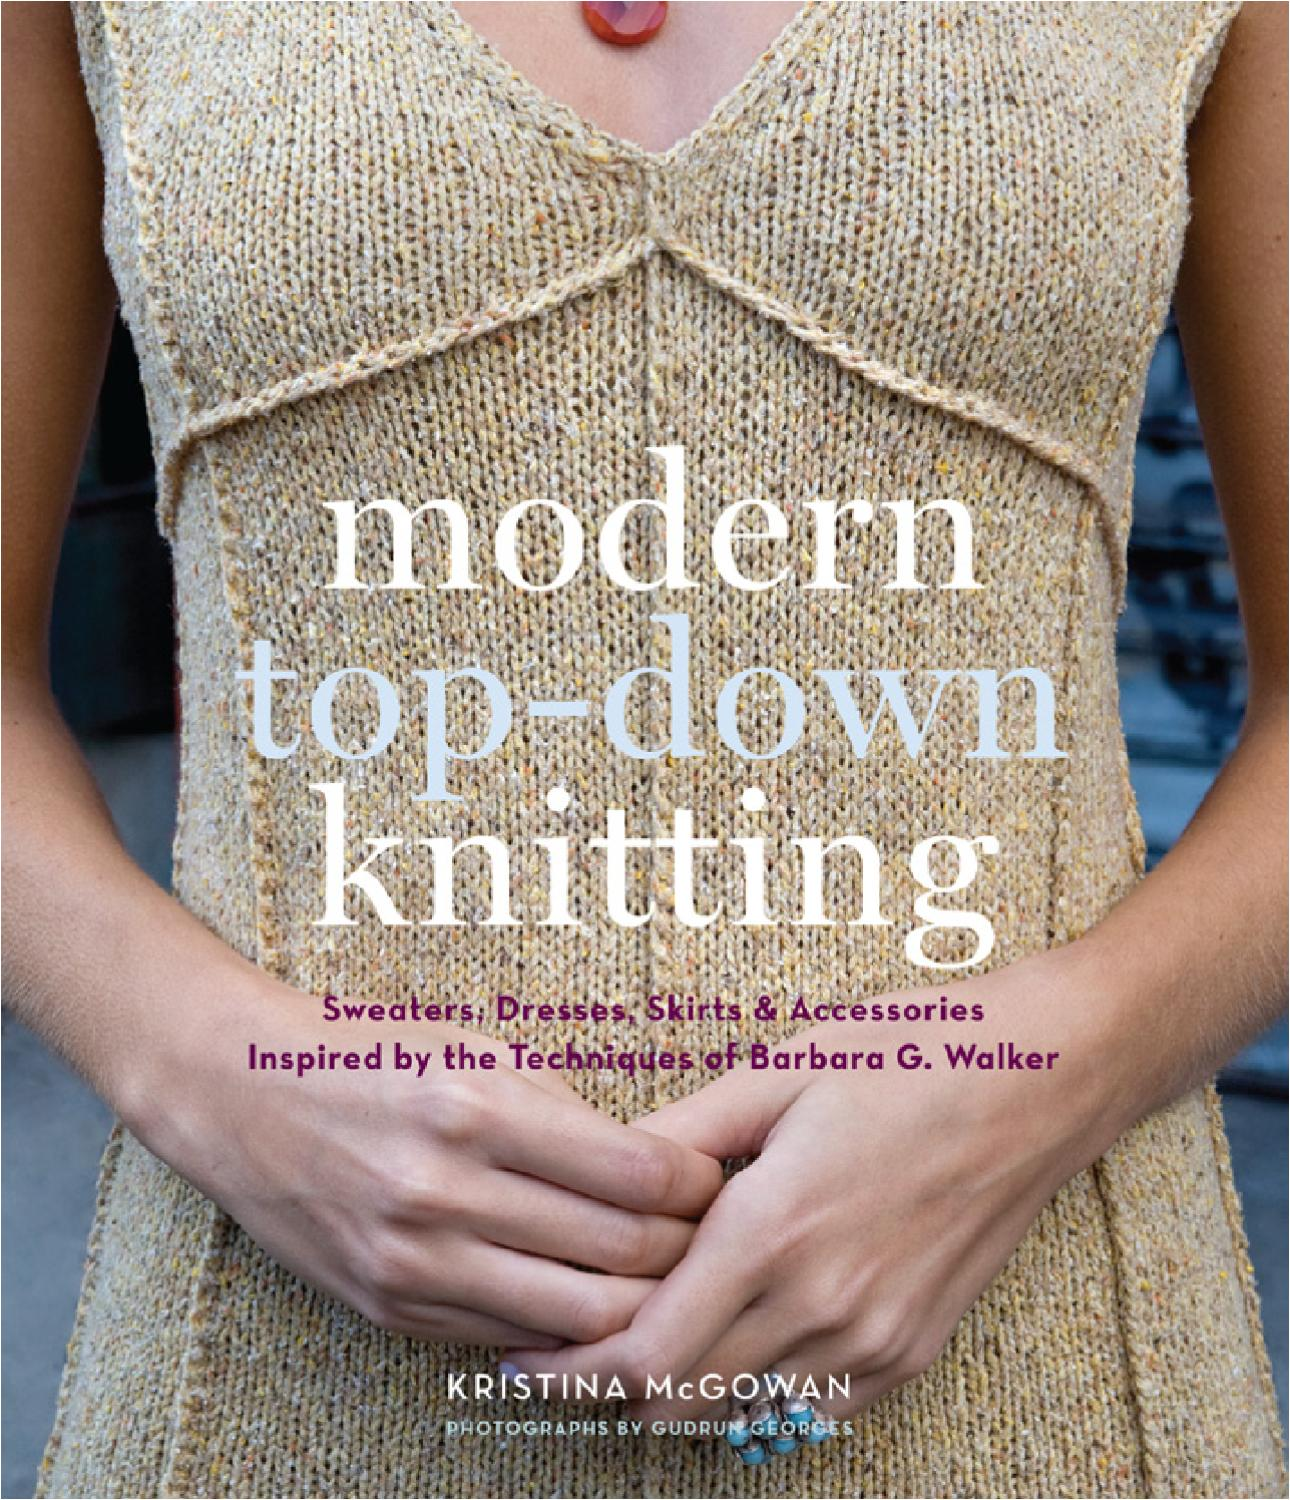 Modern Top-Down Knitting By Kristina McGowan (preview) by ABRAMS - issuu